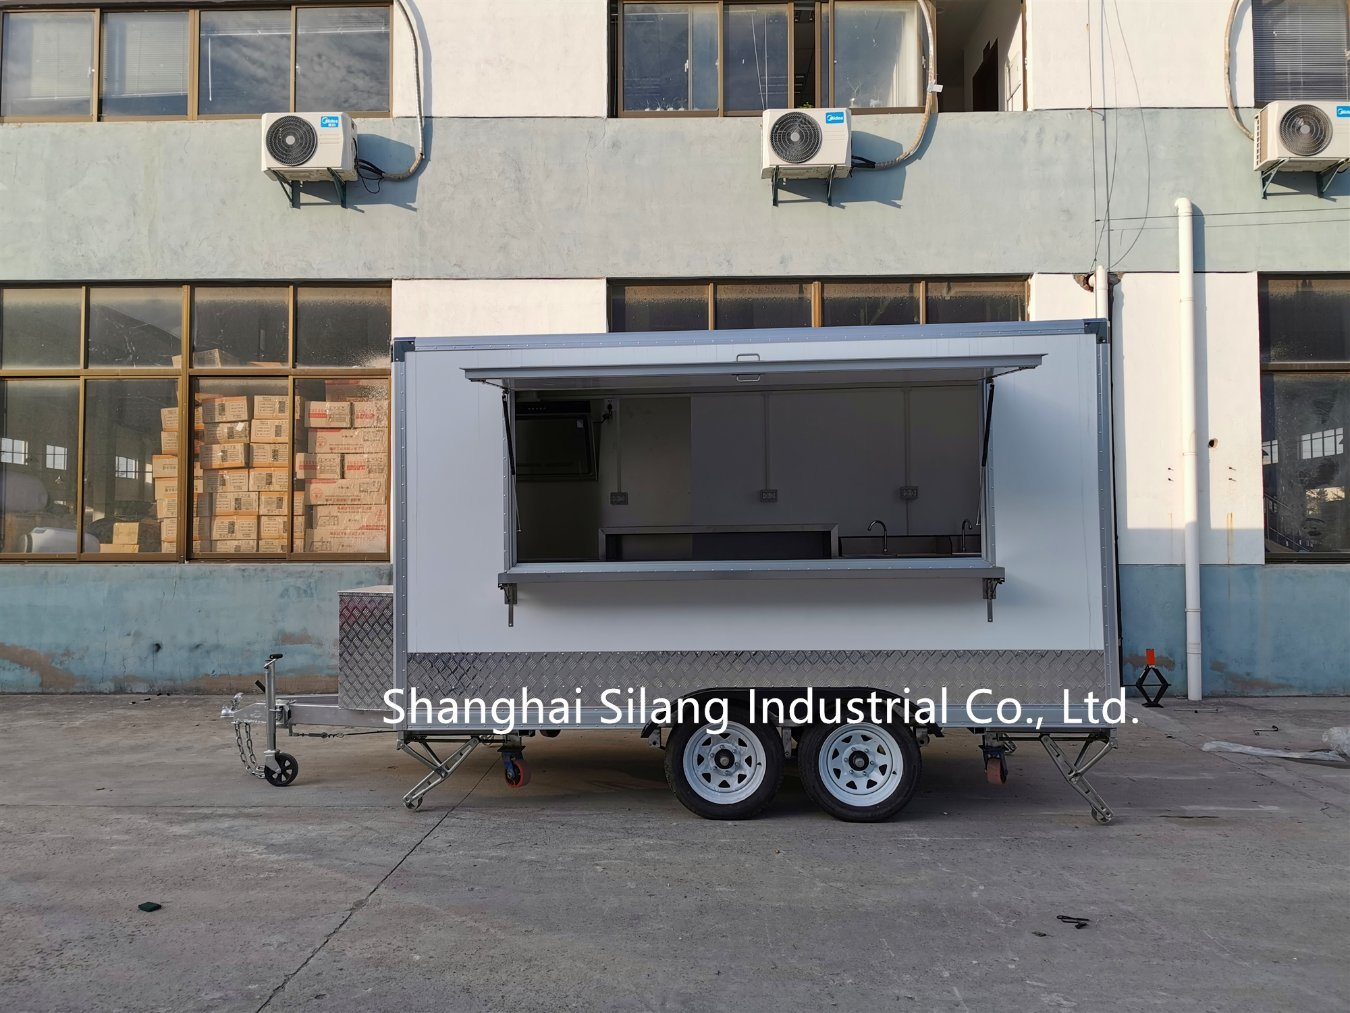 China European Community Type Approval High Quality Food Truck Catering Trailer Coffee Bar Ice Cream Pizza Burger Food Cart Photos Pictures Made In China Com